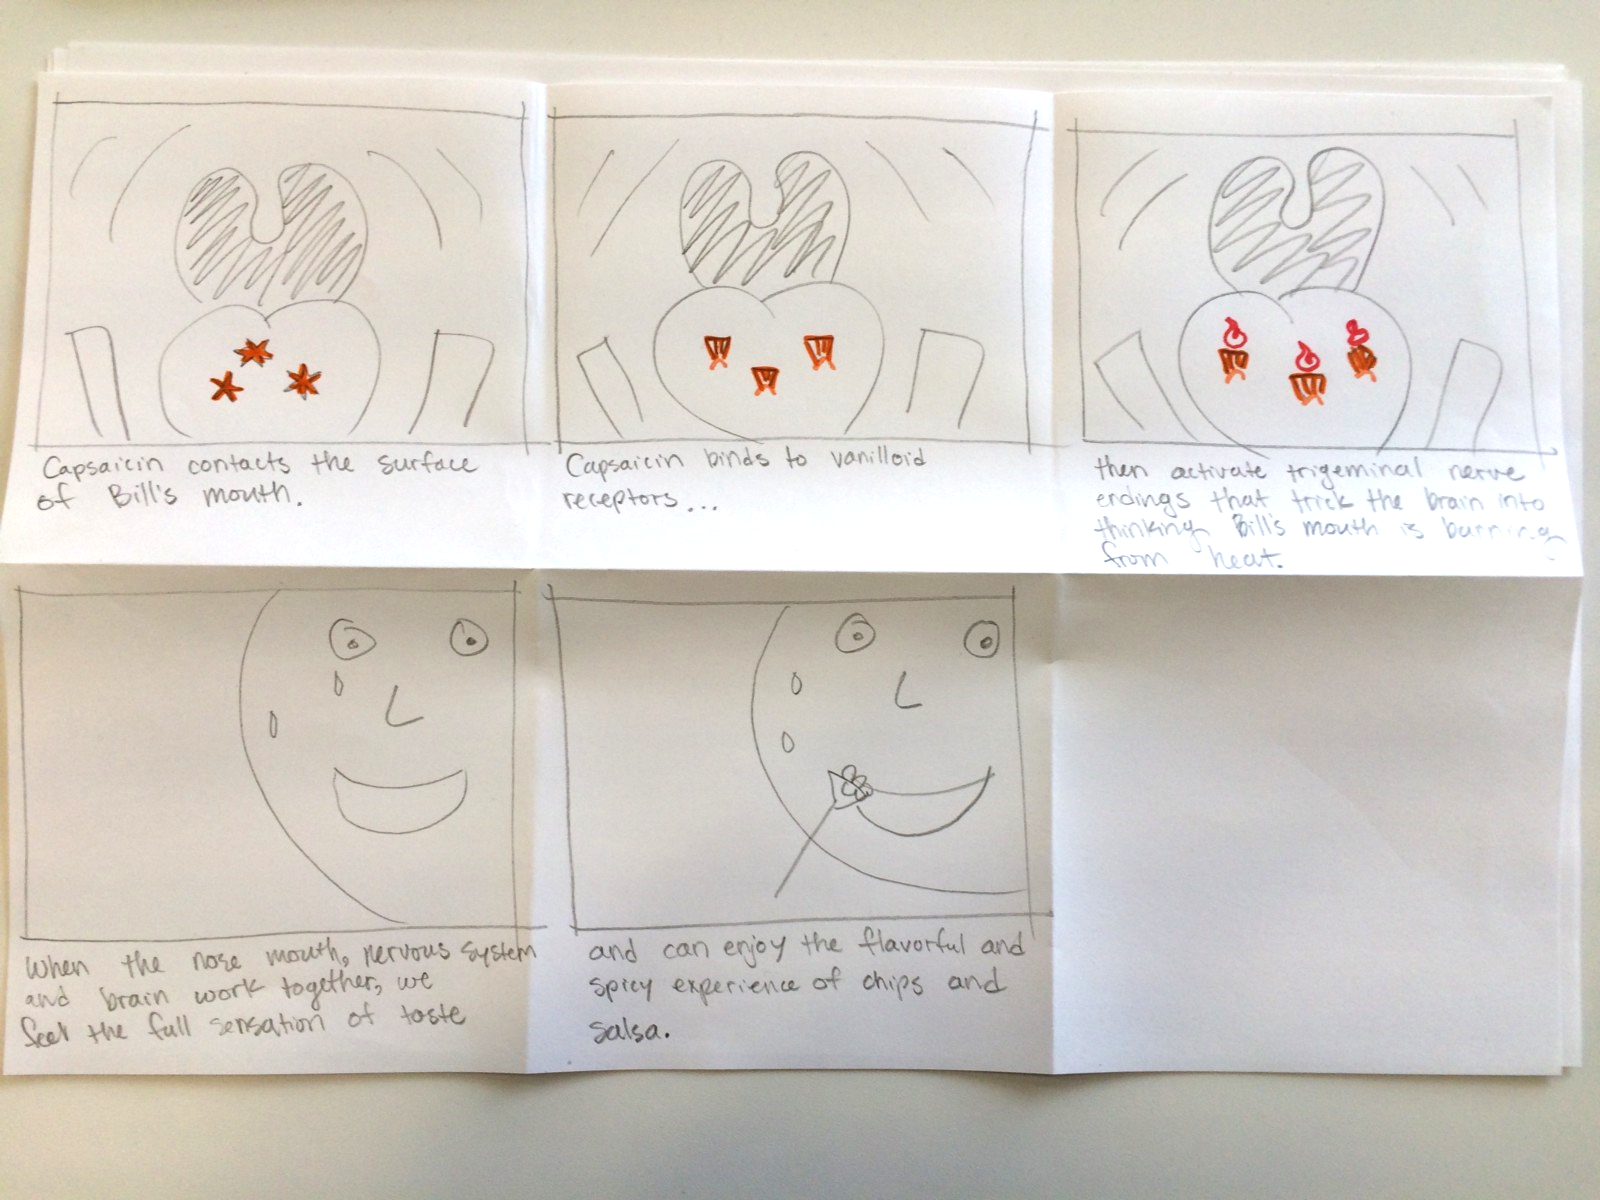 (Second Draft, Part 3)  I  n-depth storyboard illustrating capsaicin and its painful effect.